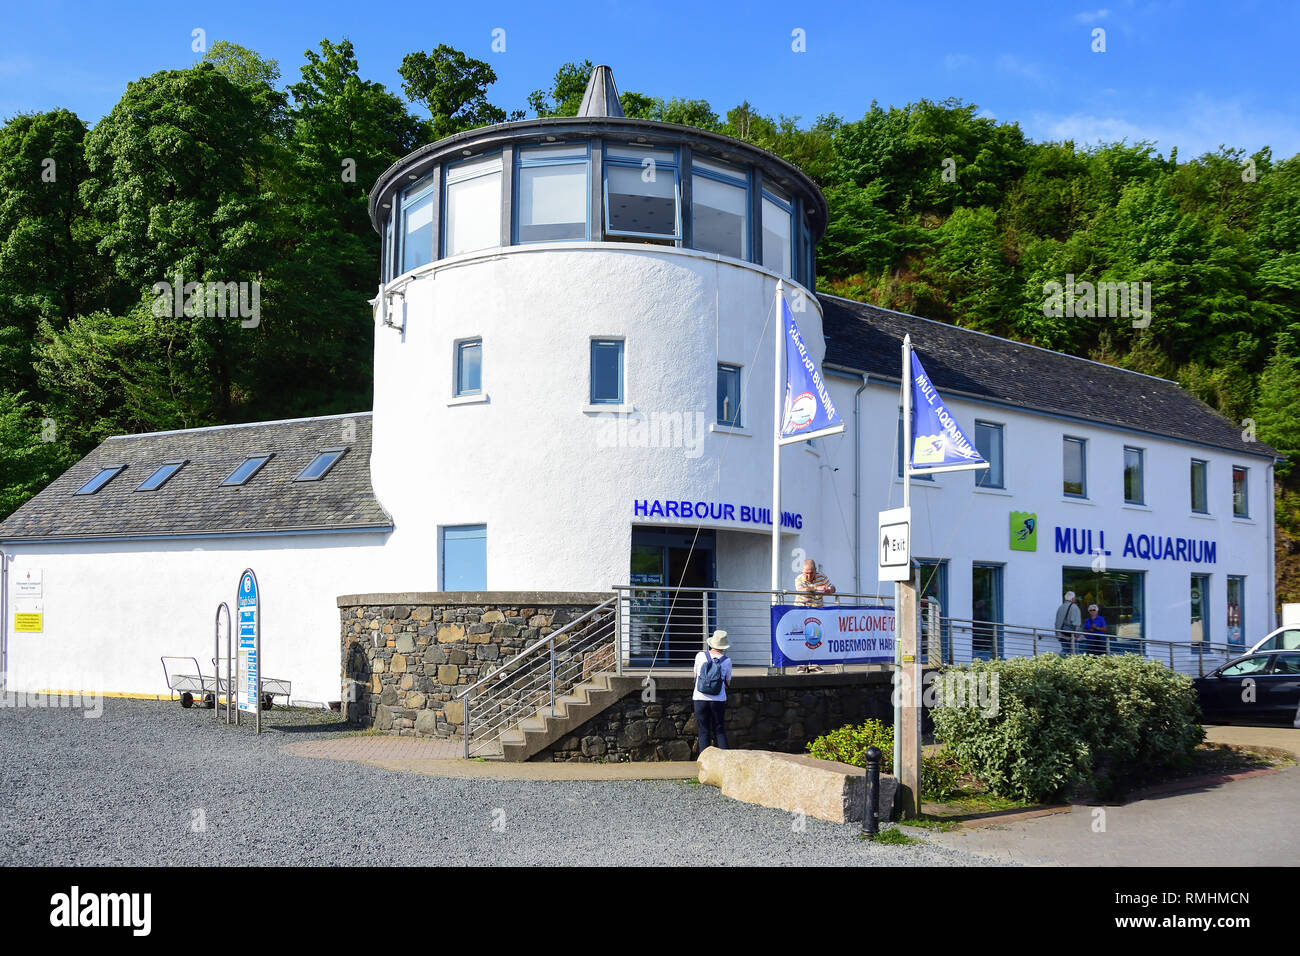 Harbour Building and Mull Aquarium, Tobermory, Isle of Bute, Inner Hebrides, Argyll and Bute, Scotland, United Kingdom - Stock Image